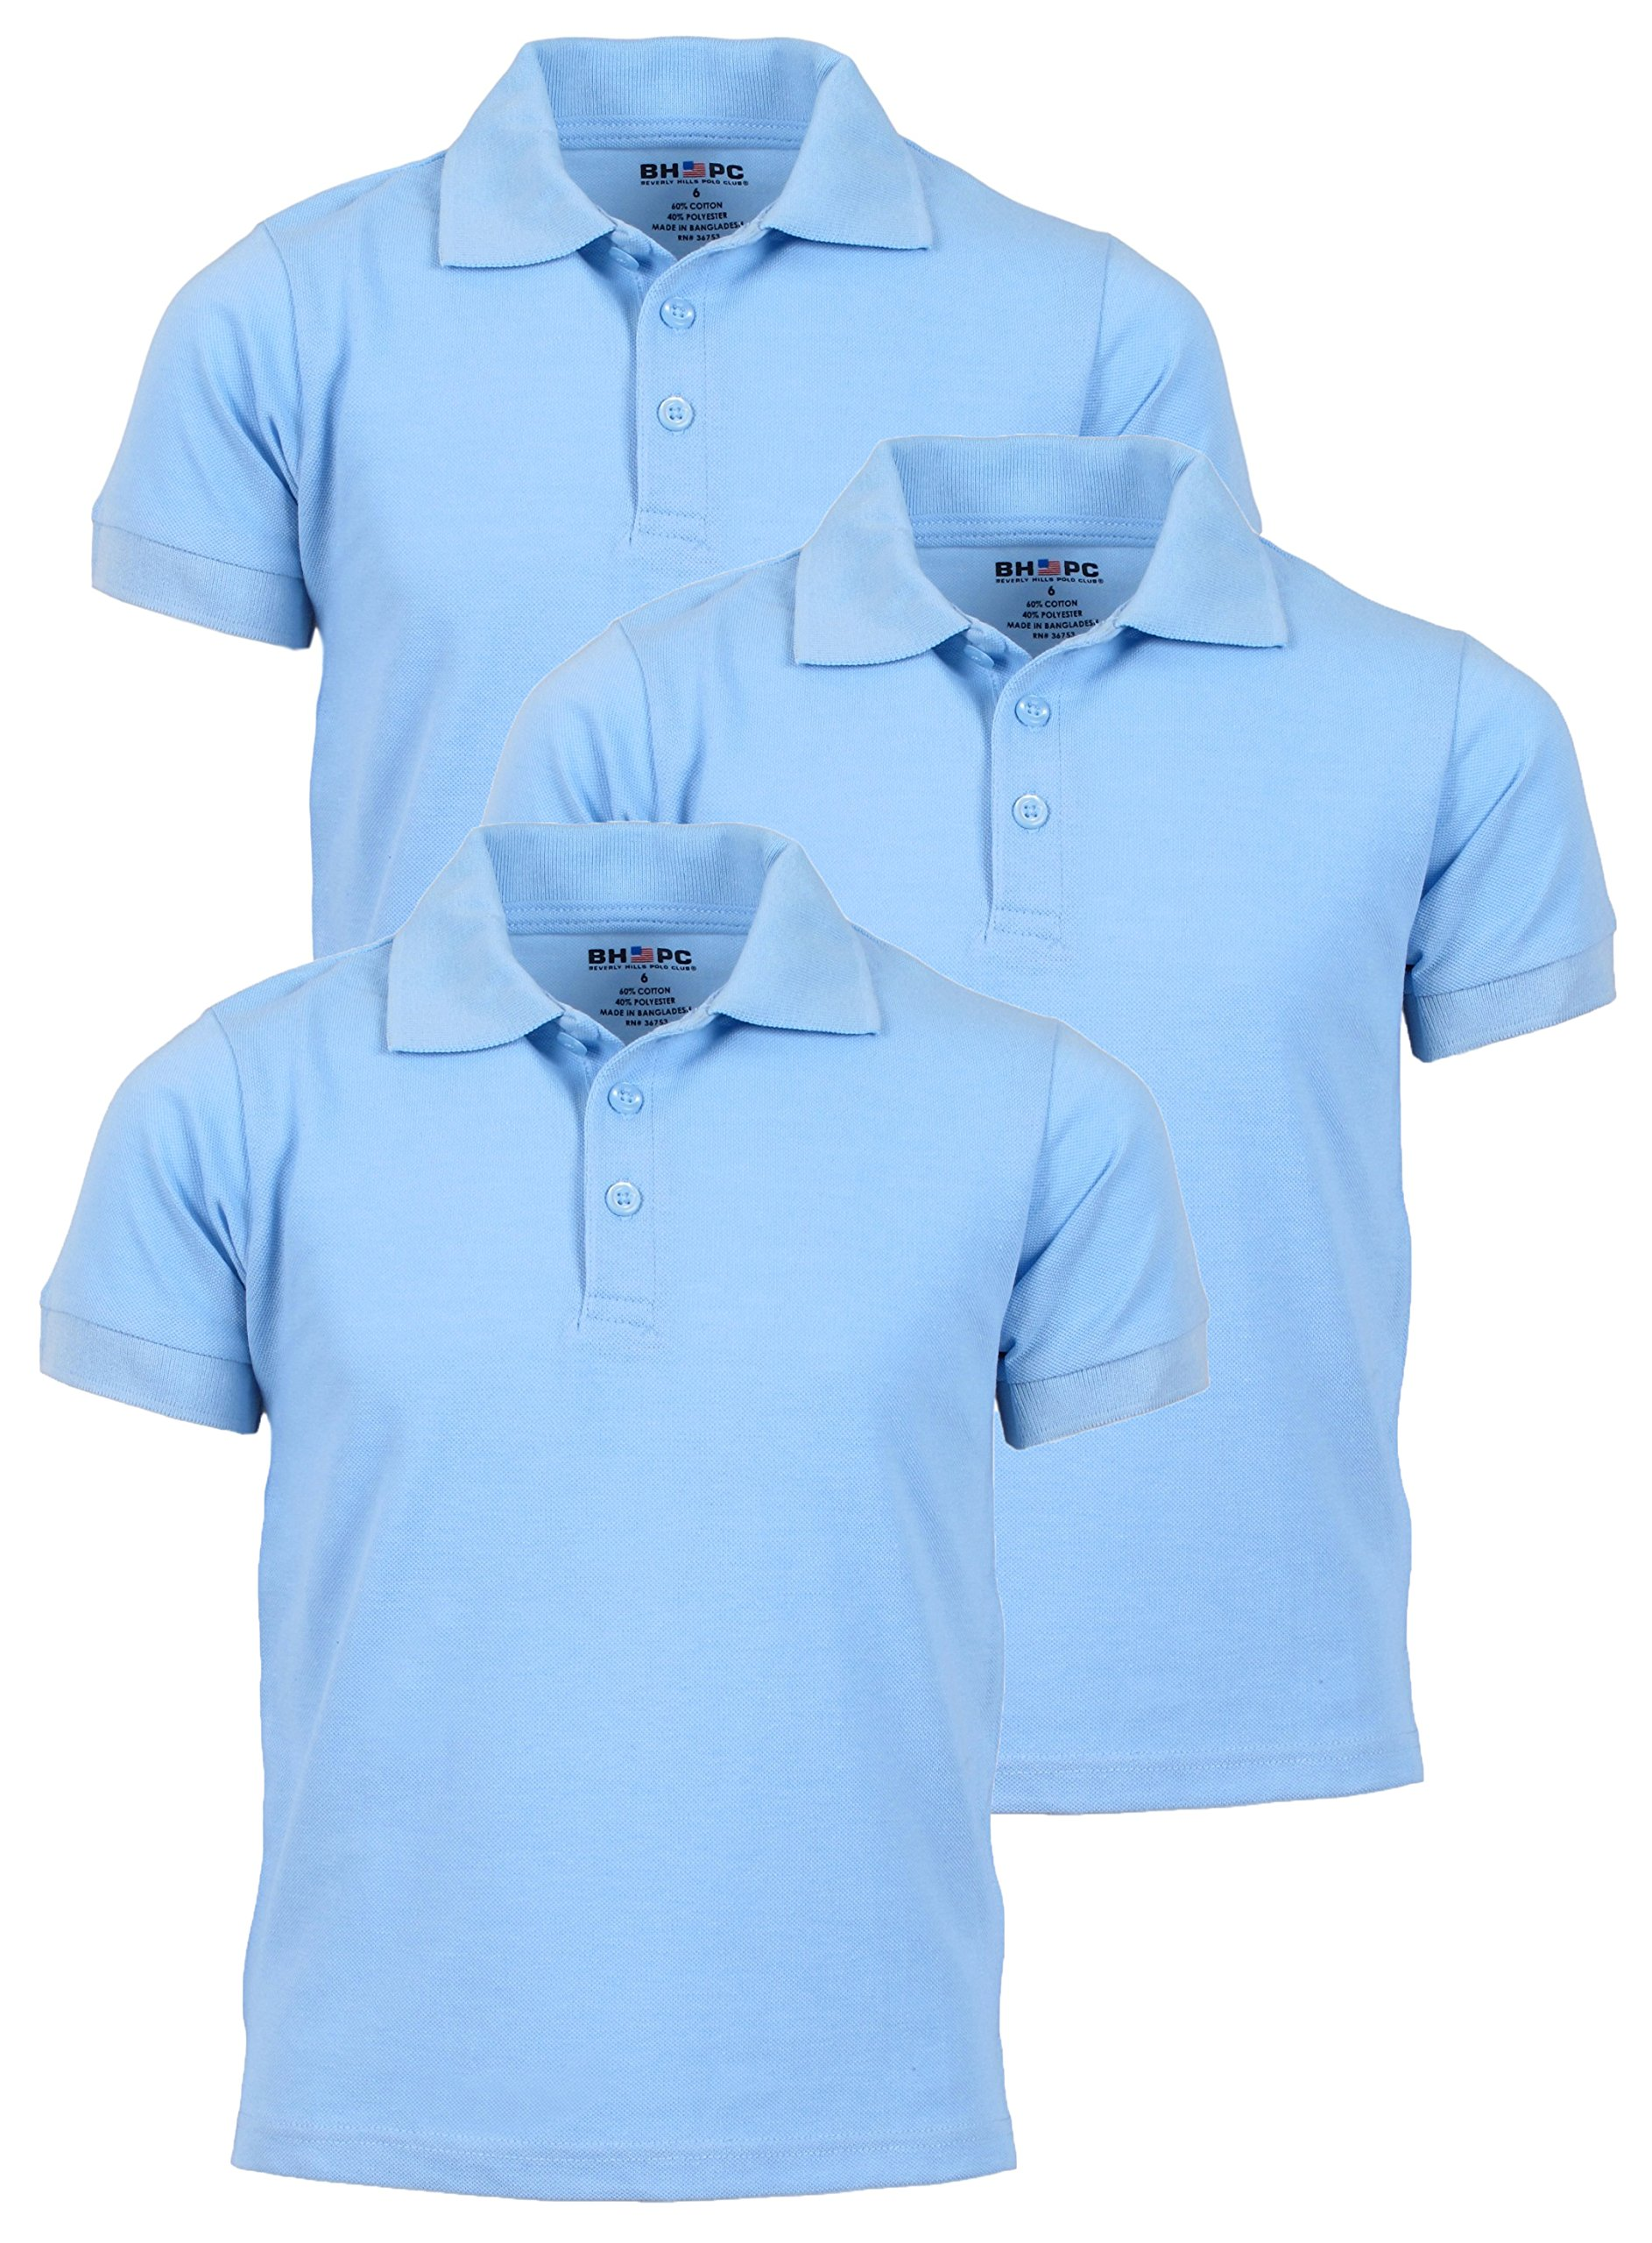 Beverly Hills Polo Club 3 Pack of Boys' Short Sleeve Pique Uniform Polo Shirts, Size 12, Light Blue